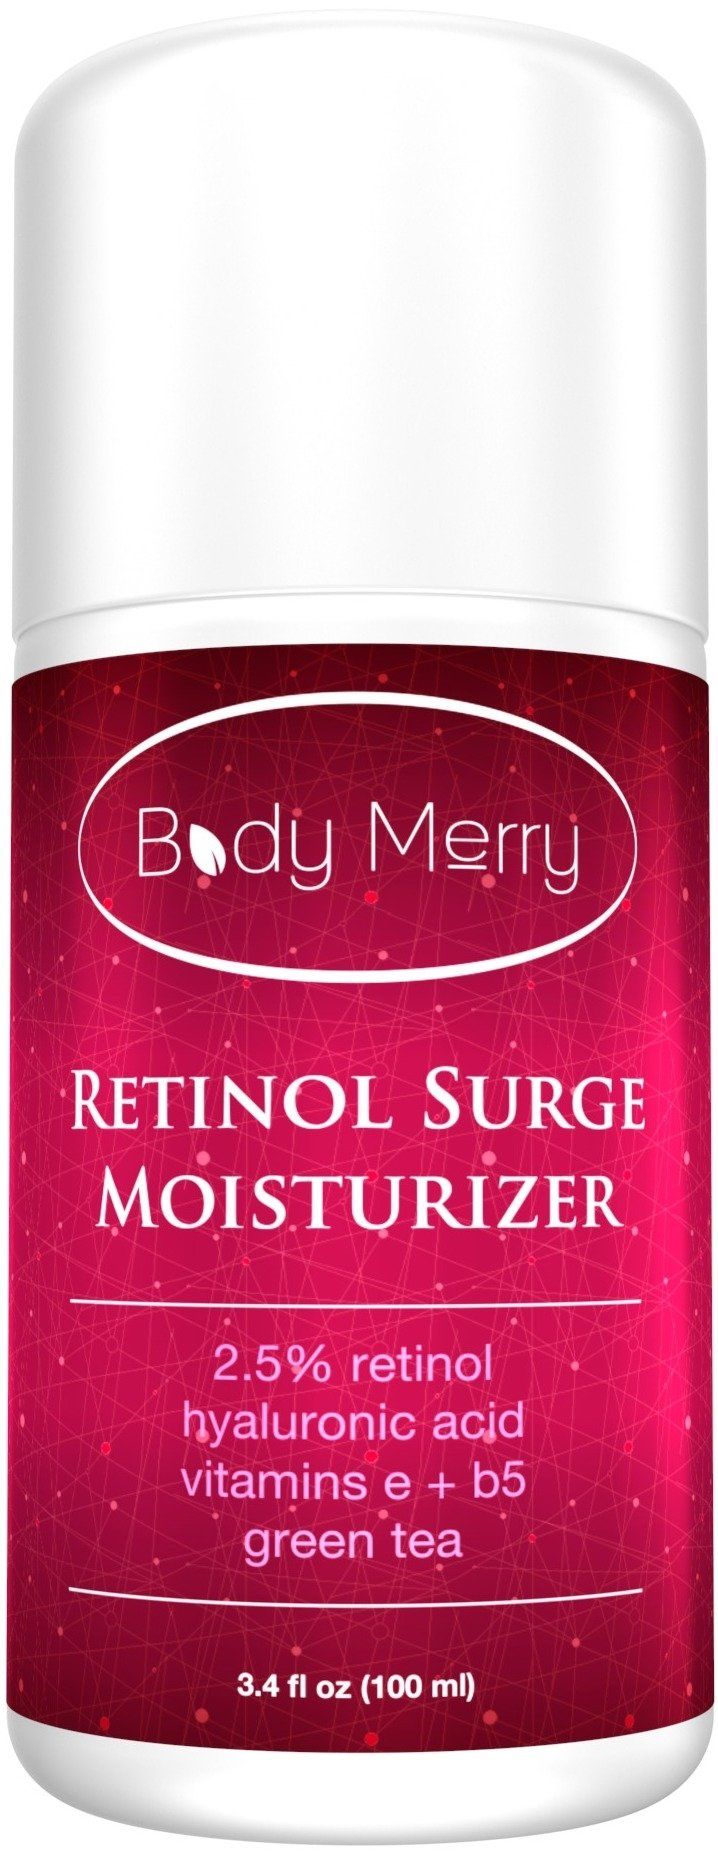 RETINOL MOISTURIZER - Professional Grade 2.5% Retinol Cream with Vegan Hyaluronic Acid, Green Tea, Vitamin E and Vitamin B5 - BEST Natural & Organic Anti-Aging Facial & Neck Firming Moisturizer for Wrinkles, Fine Lines, Acne and Dark Spots - Evens your skin tone for a Youthful and Radiant Glow